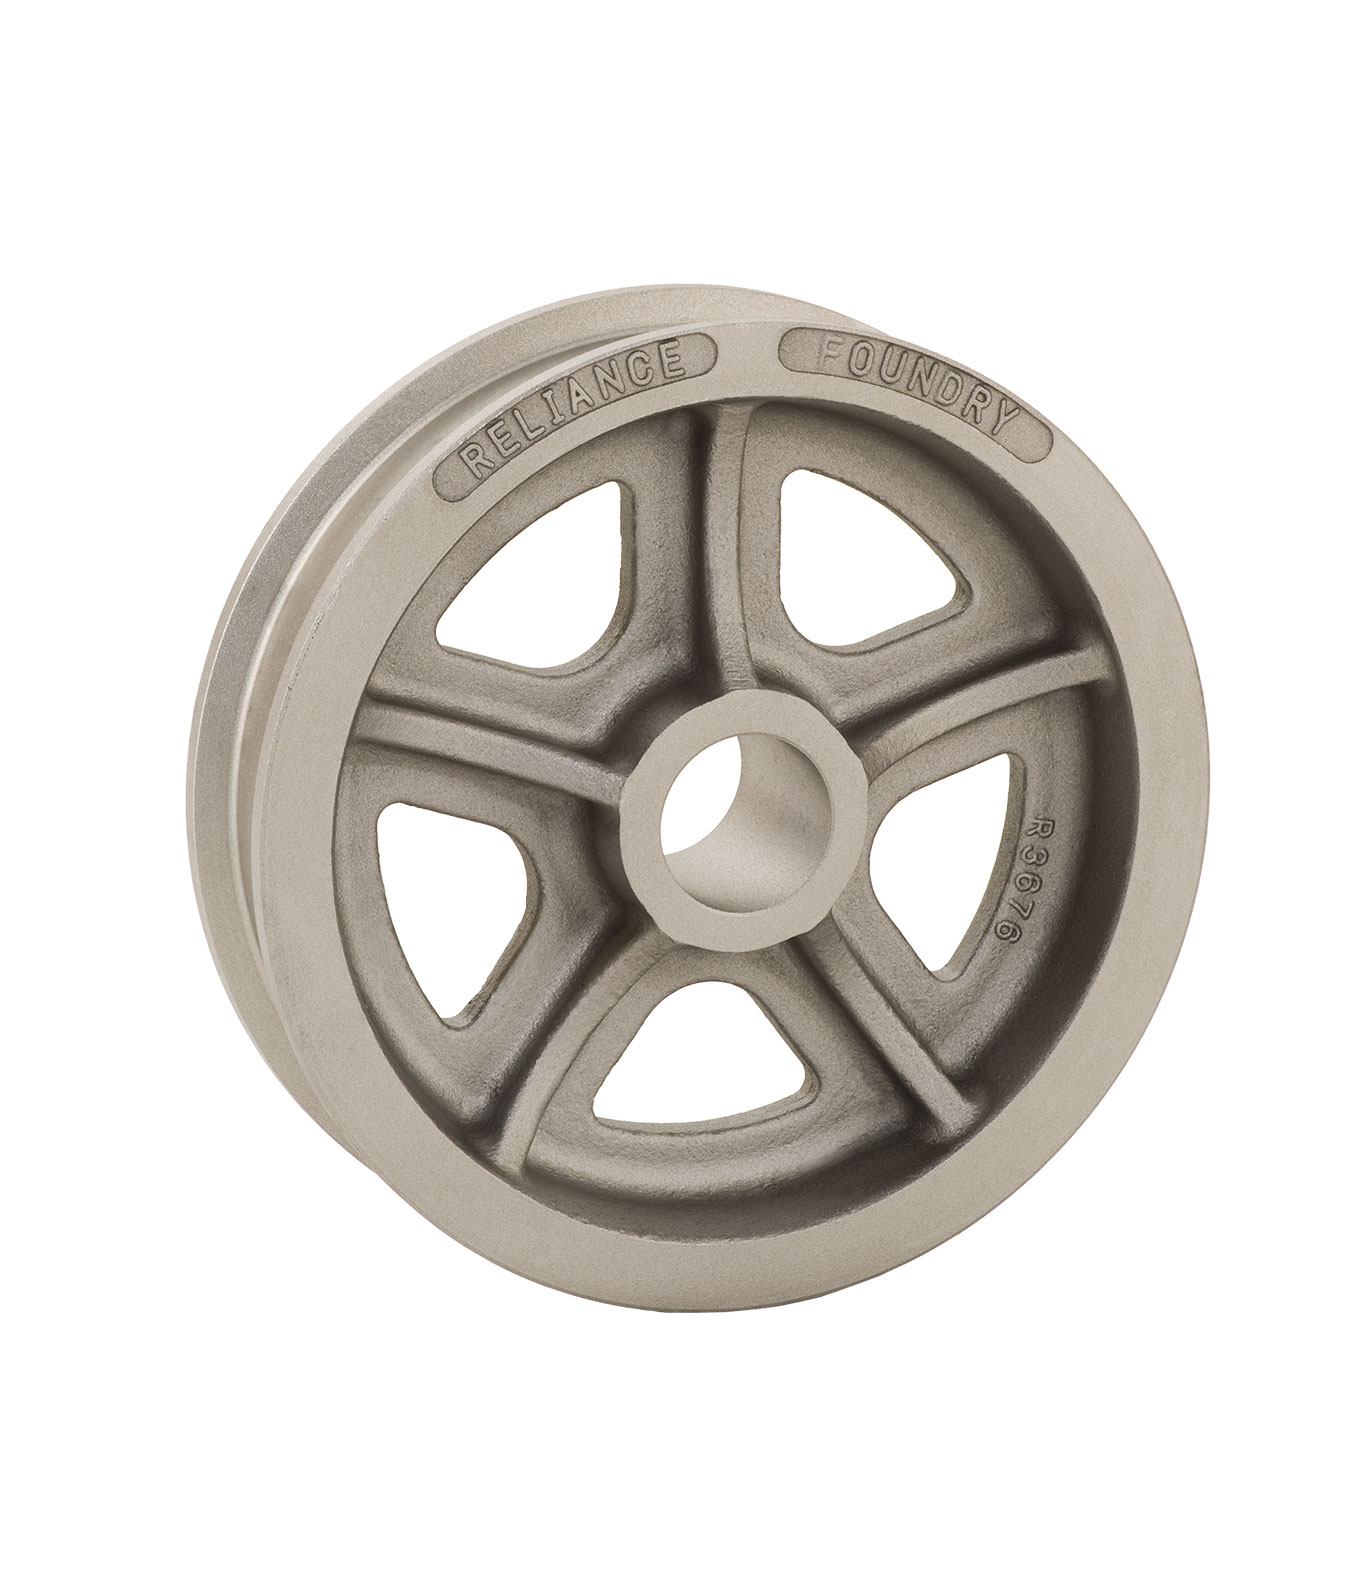 R-3676 Double Flanged Wheel